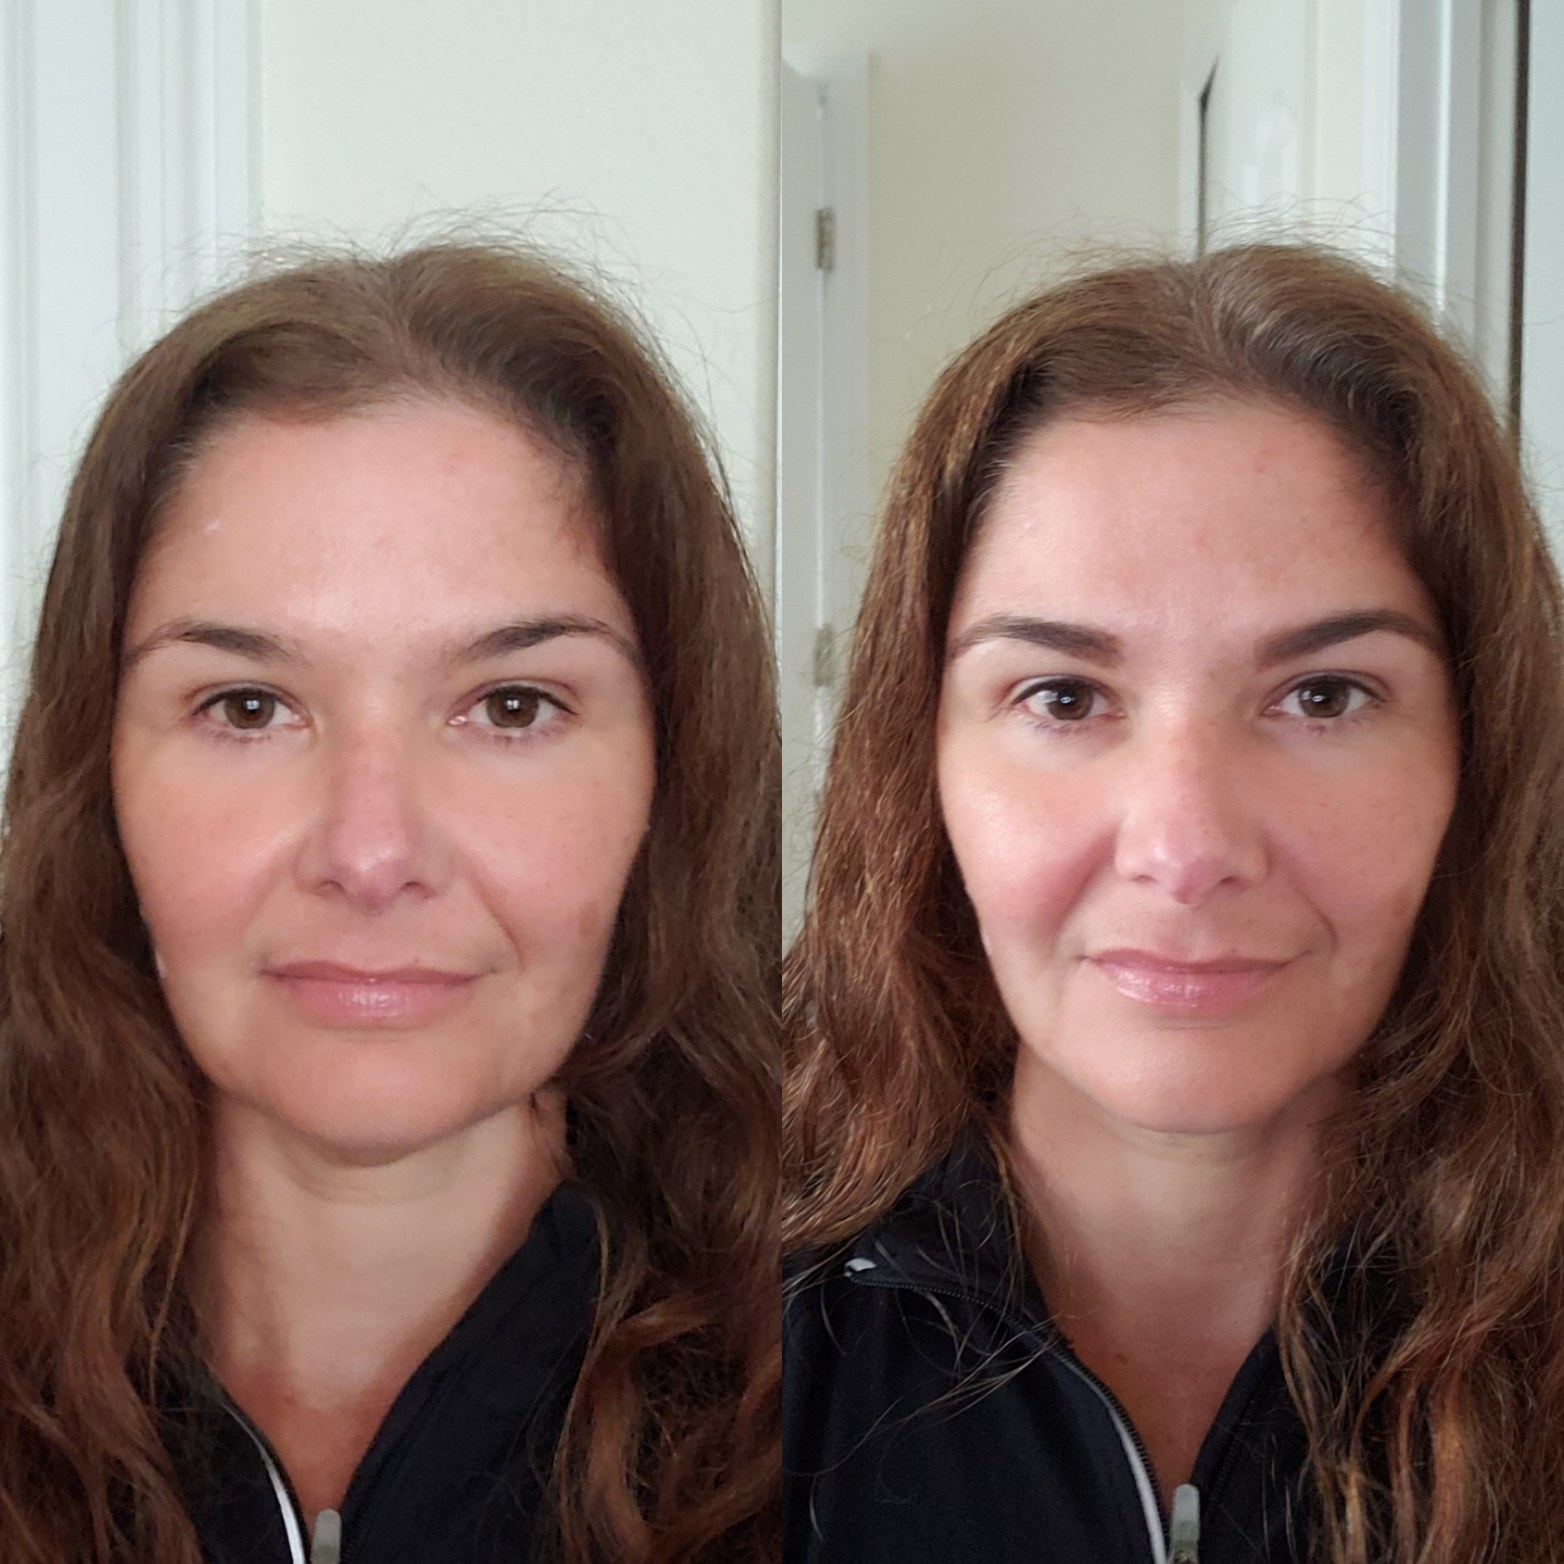 reviewer before and after with filled, shapely brows after using the gel